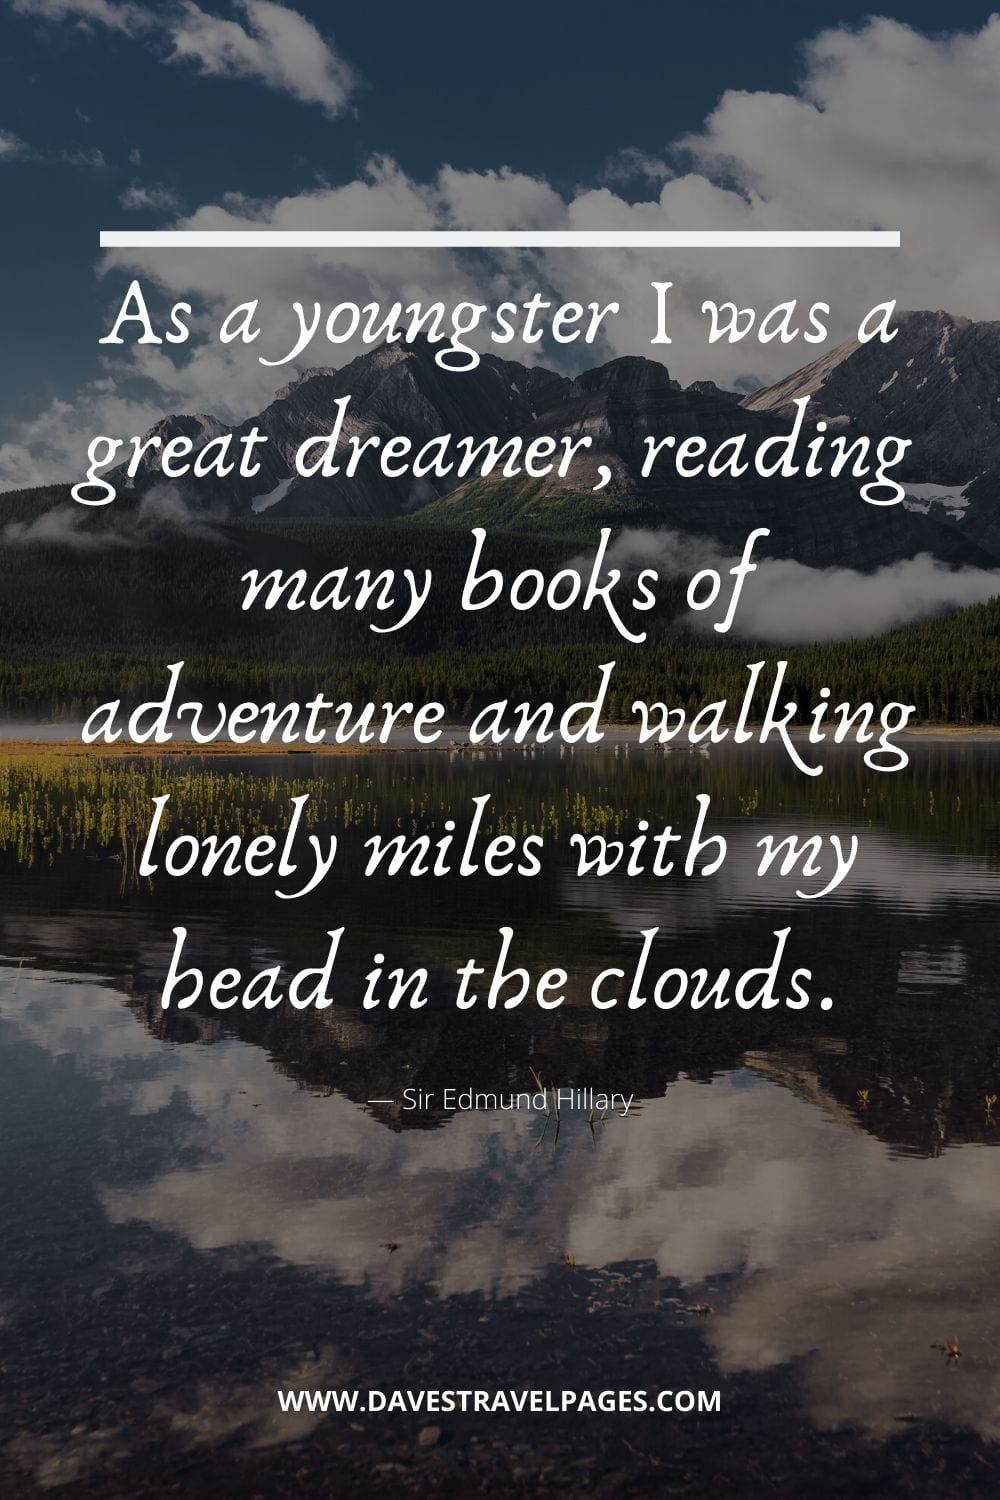 Adventure Quotes - As a youngster I was a great dreamer, reading many books of adventure and walking lonely miles with my head in the clouds. - Edmund Hillary